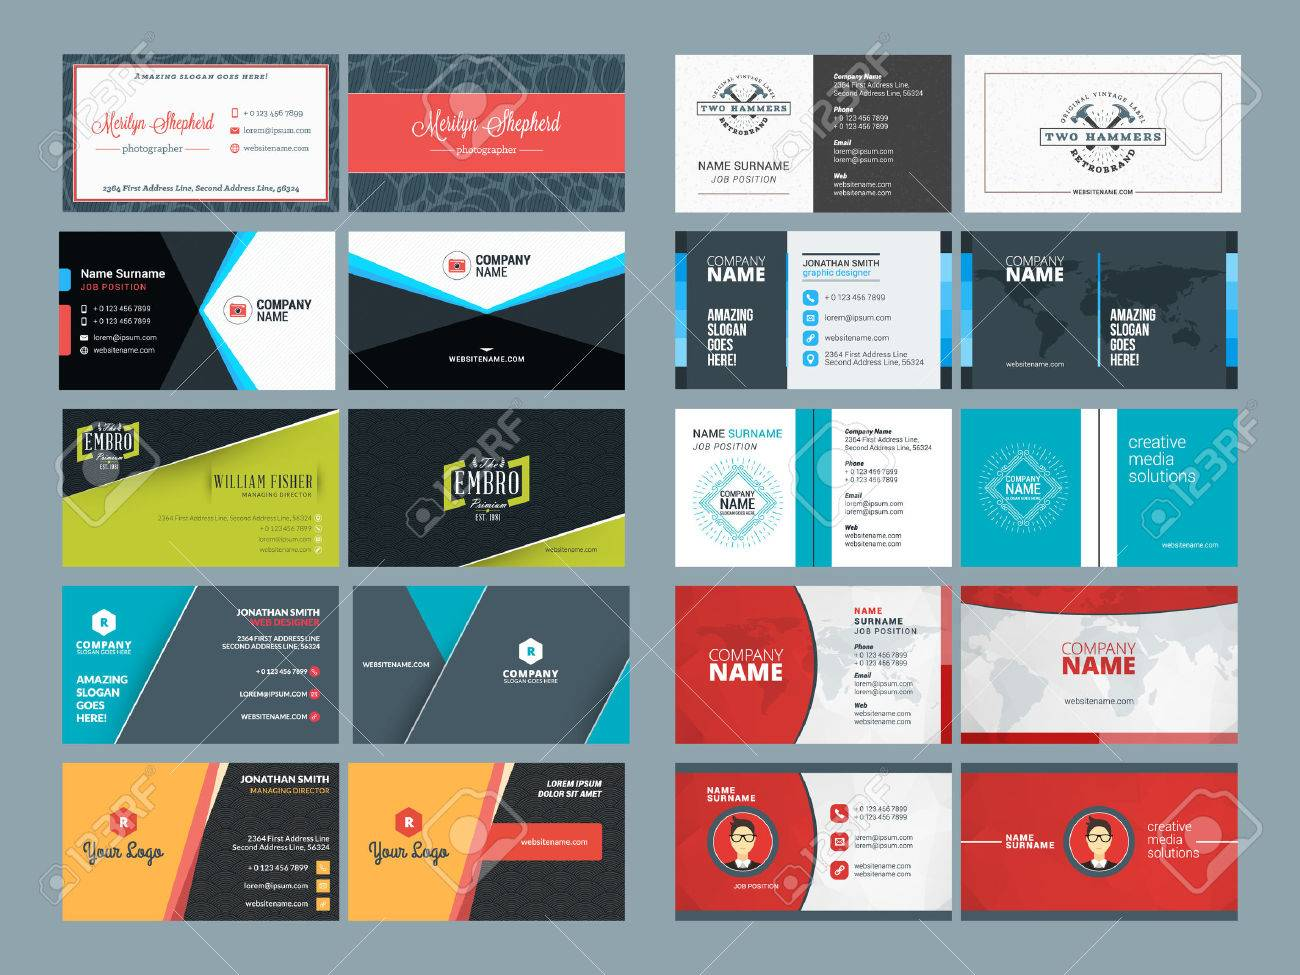 Business Card Design Print Image collections - Free Business Cards